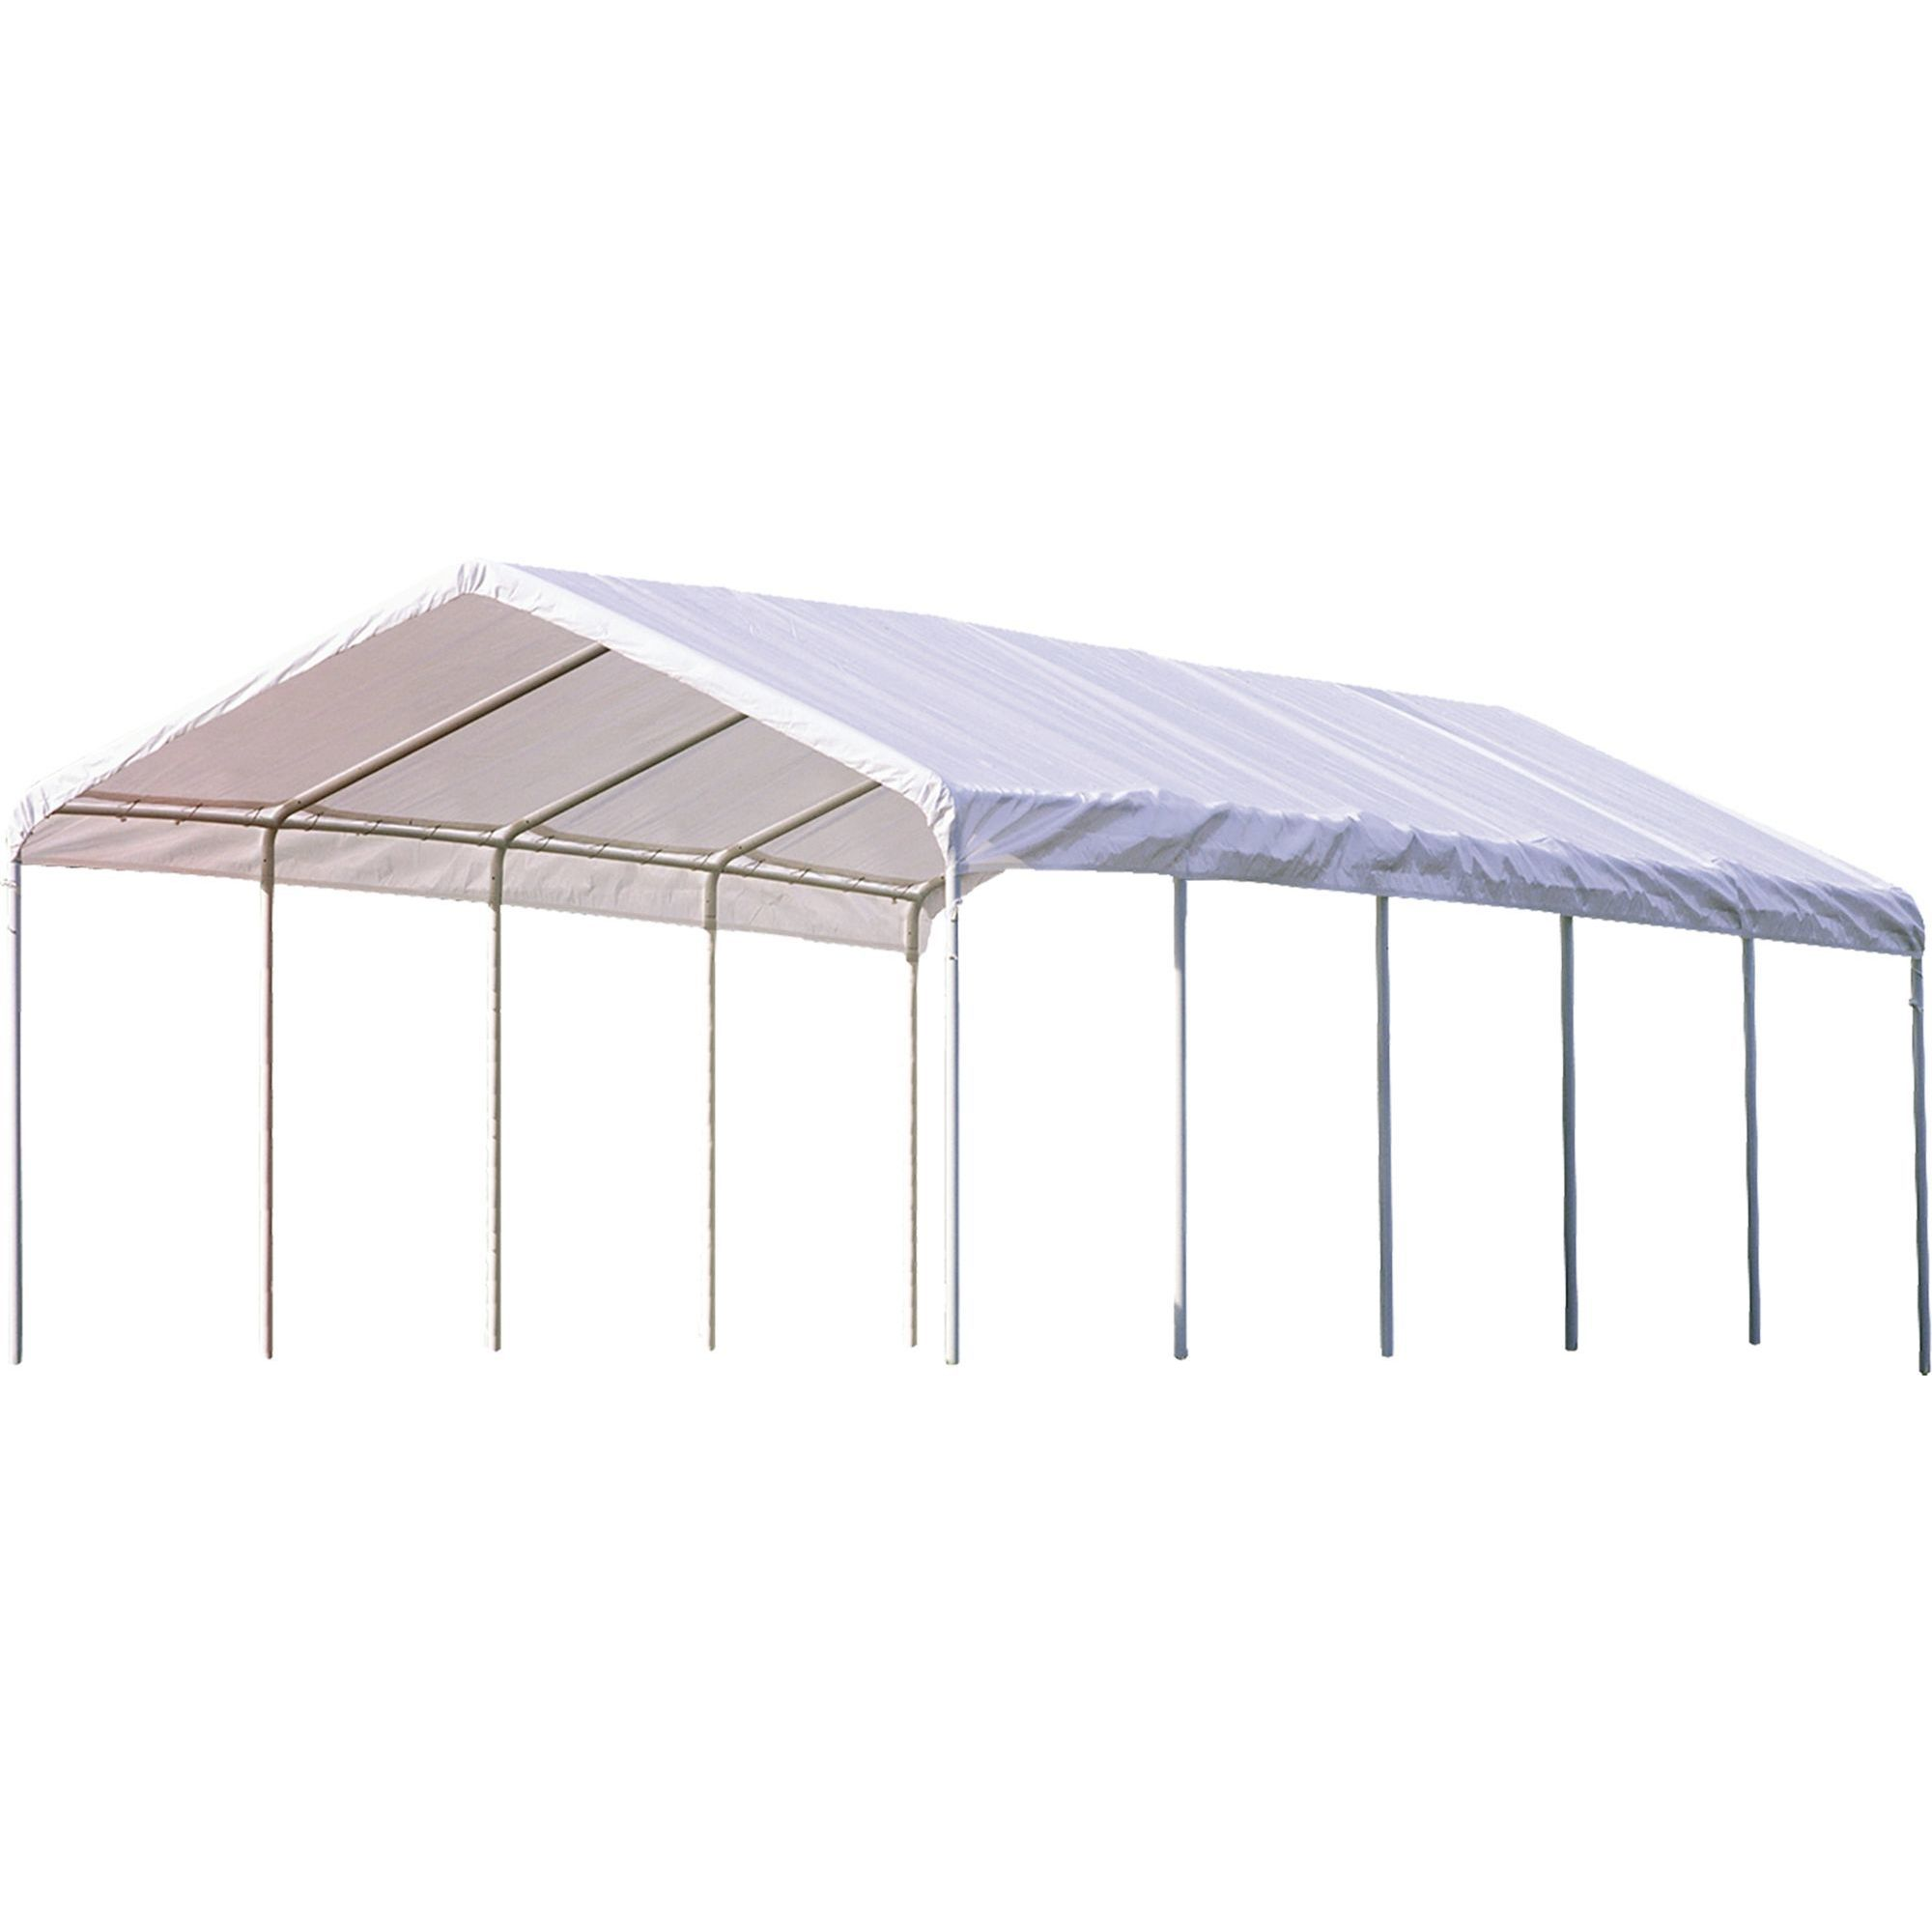 Shop Shelterlogic Super Max Premium Canopy Free Shipping Today Overstock 16806023